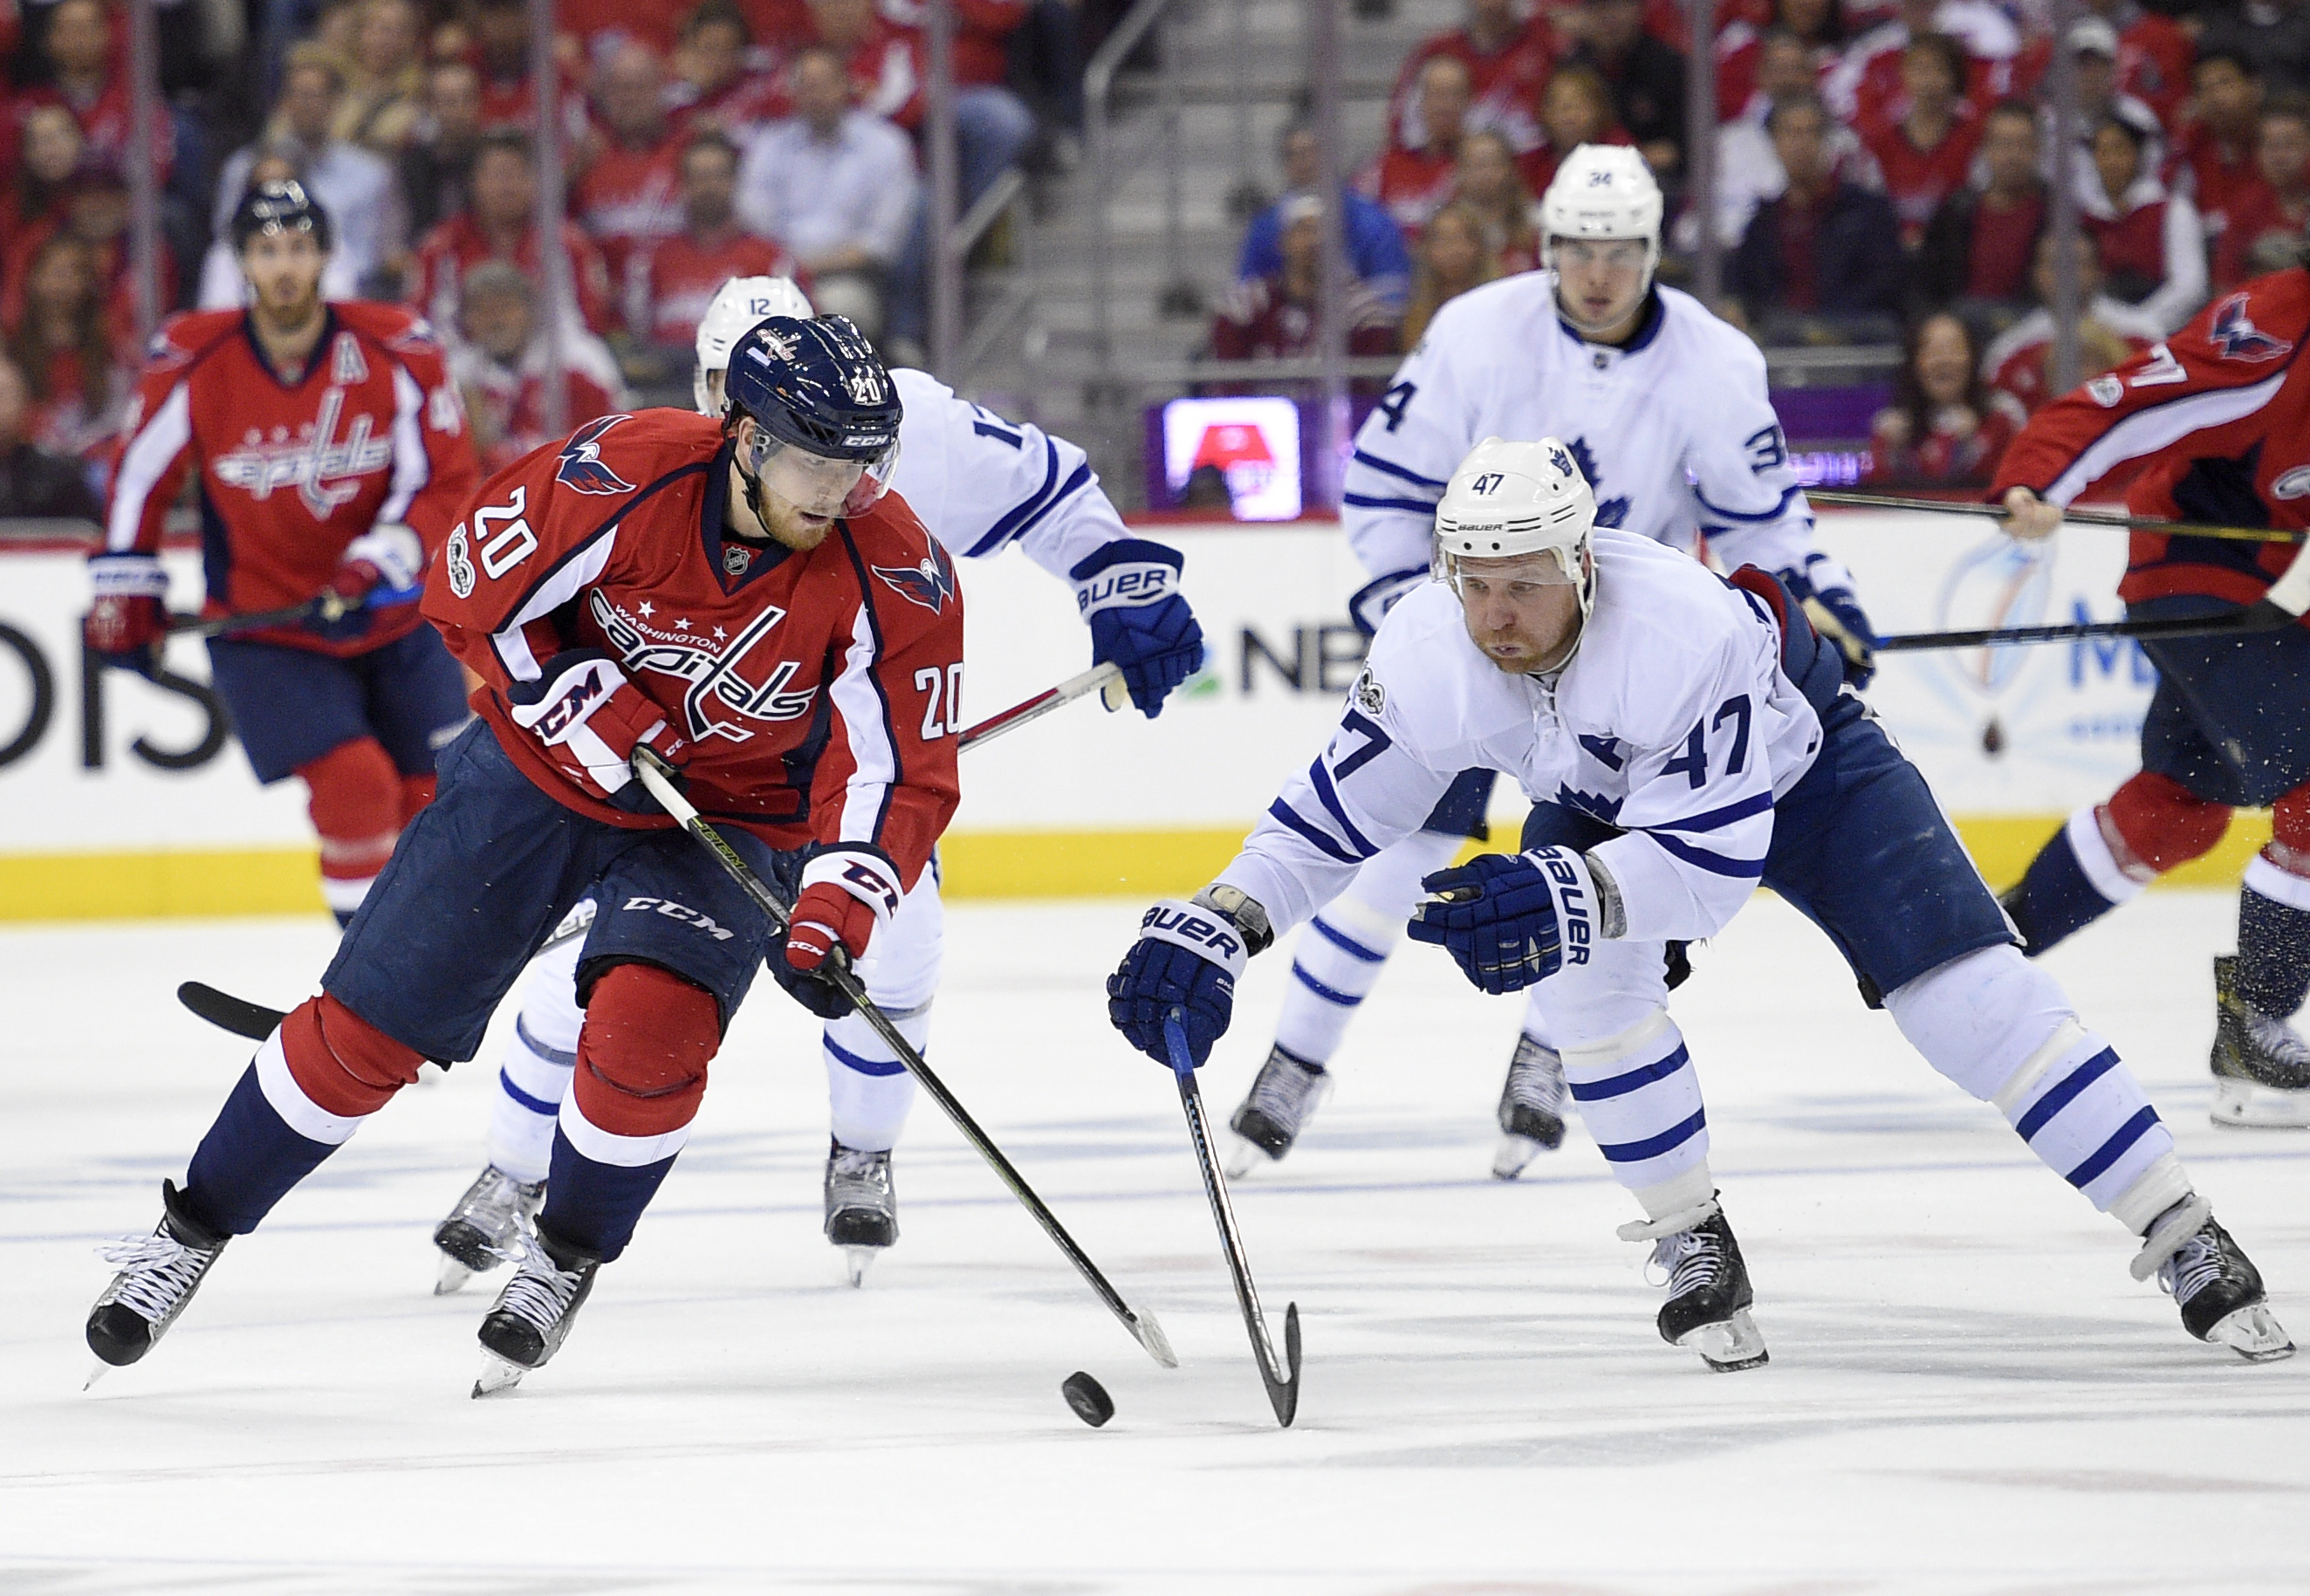 Washington Capitals center Lars Eller (20), of Denmark, battles for the puck with Toronto Maple Leafs center Leo Komarov (47), of Russia, during the second period of Game 5 in their NHL Stanley Cup hockey first-round playoff series, Friday, April 21, in Washington. (AP Photo/Nick Wass)